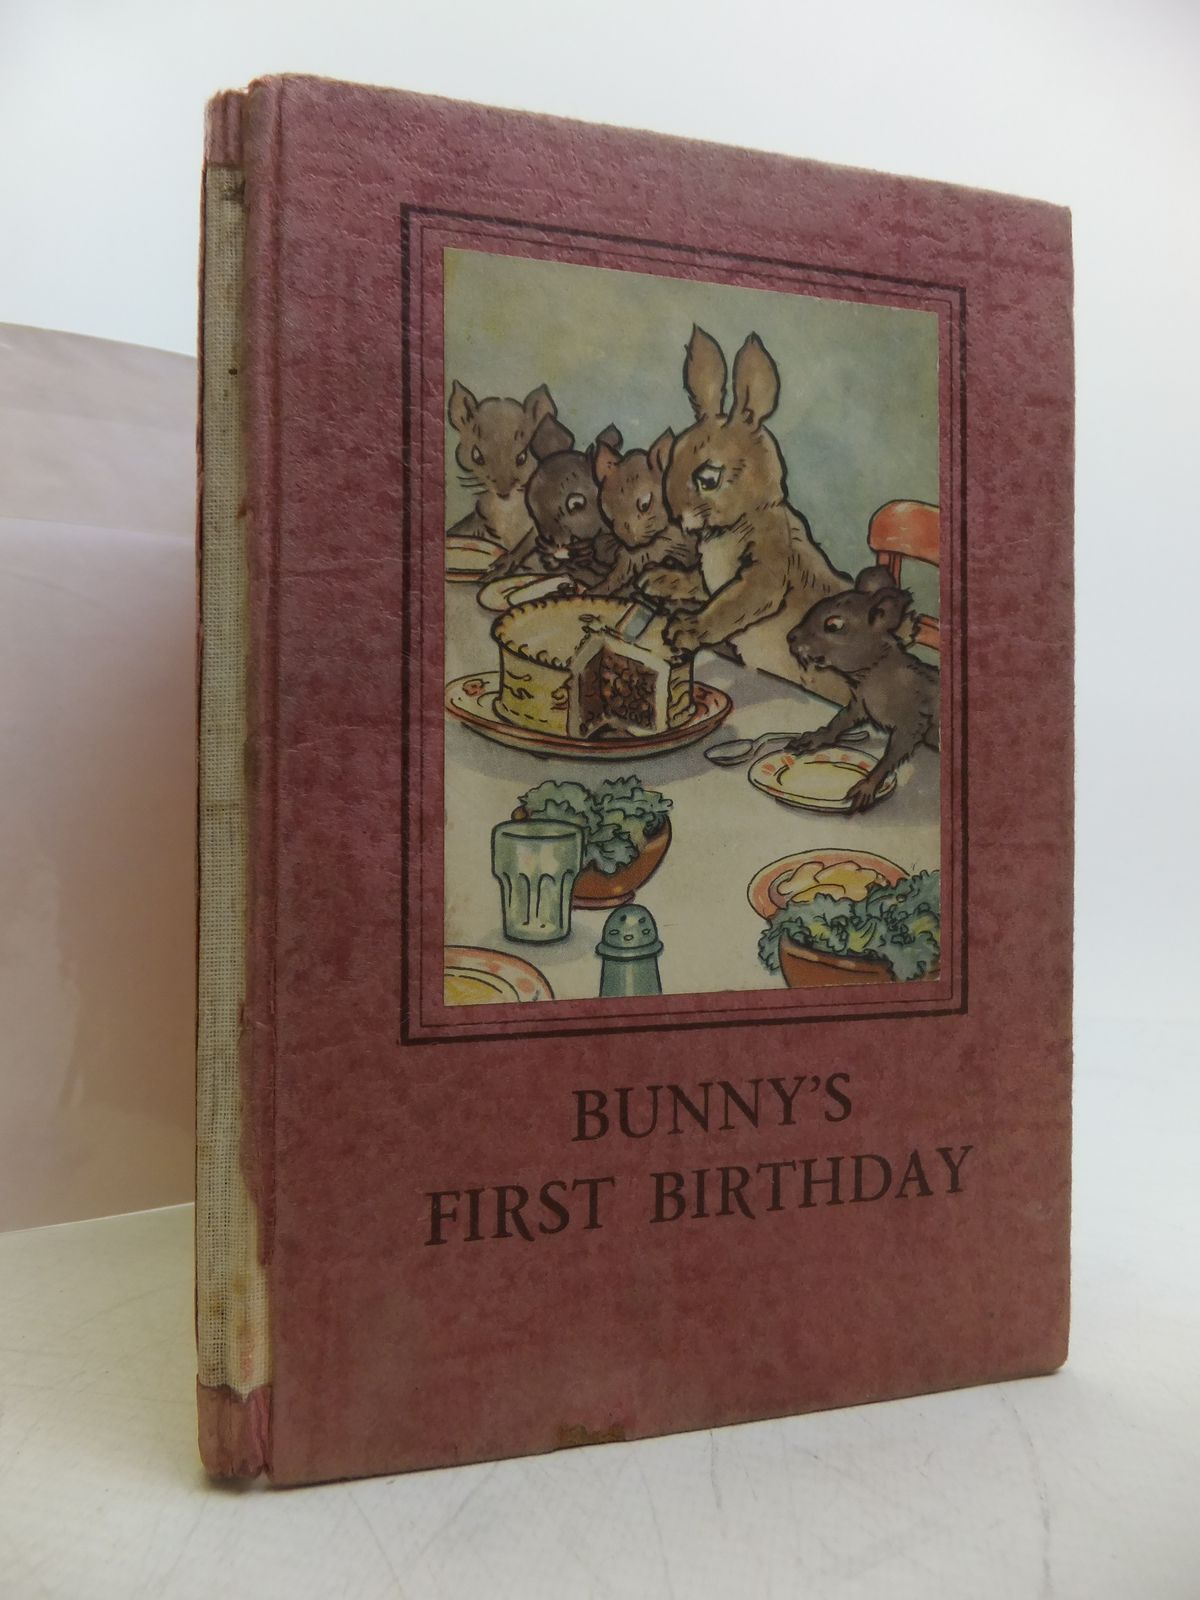 Photo of BUNNY'S FIRST BIRTHDAY written by Macgregor, A.J. Perring, W. illustrated by Macgregor, A.J. published by Wills & Hepworth Ltd. (STOCK CODE: 1811389)  for sale by Stella & Rose's Books